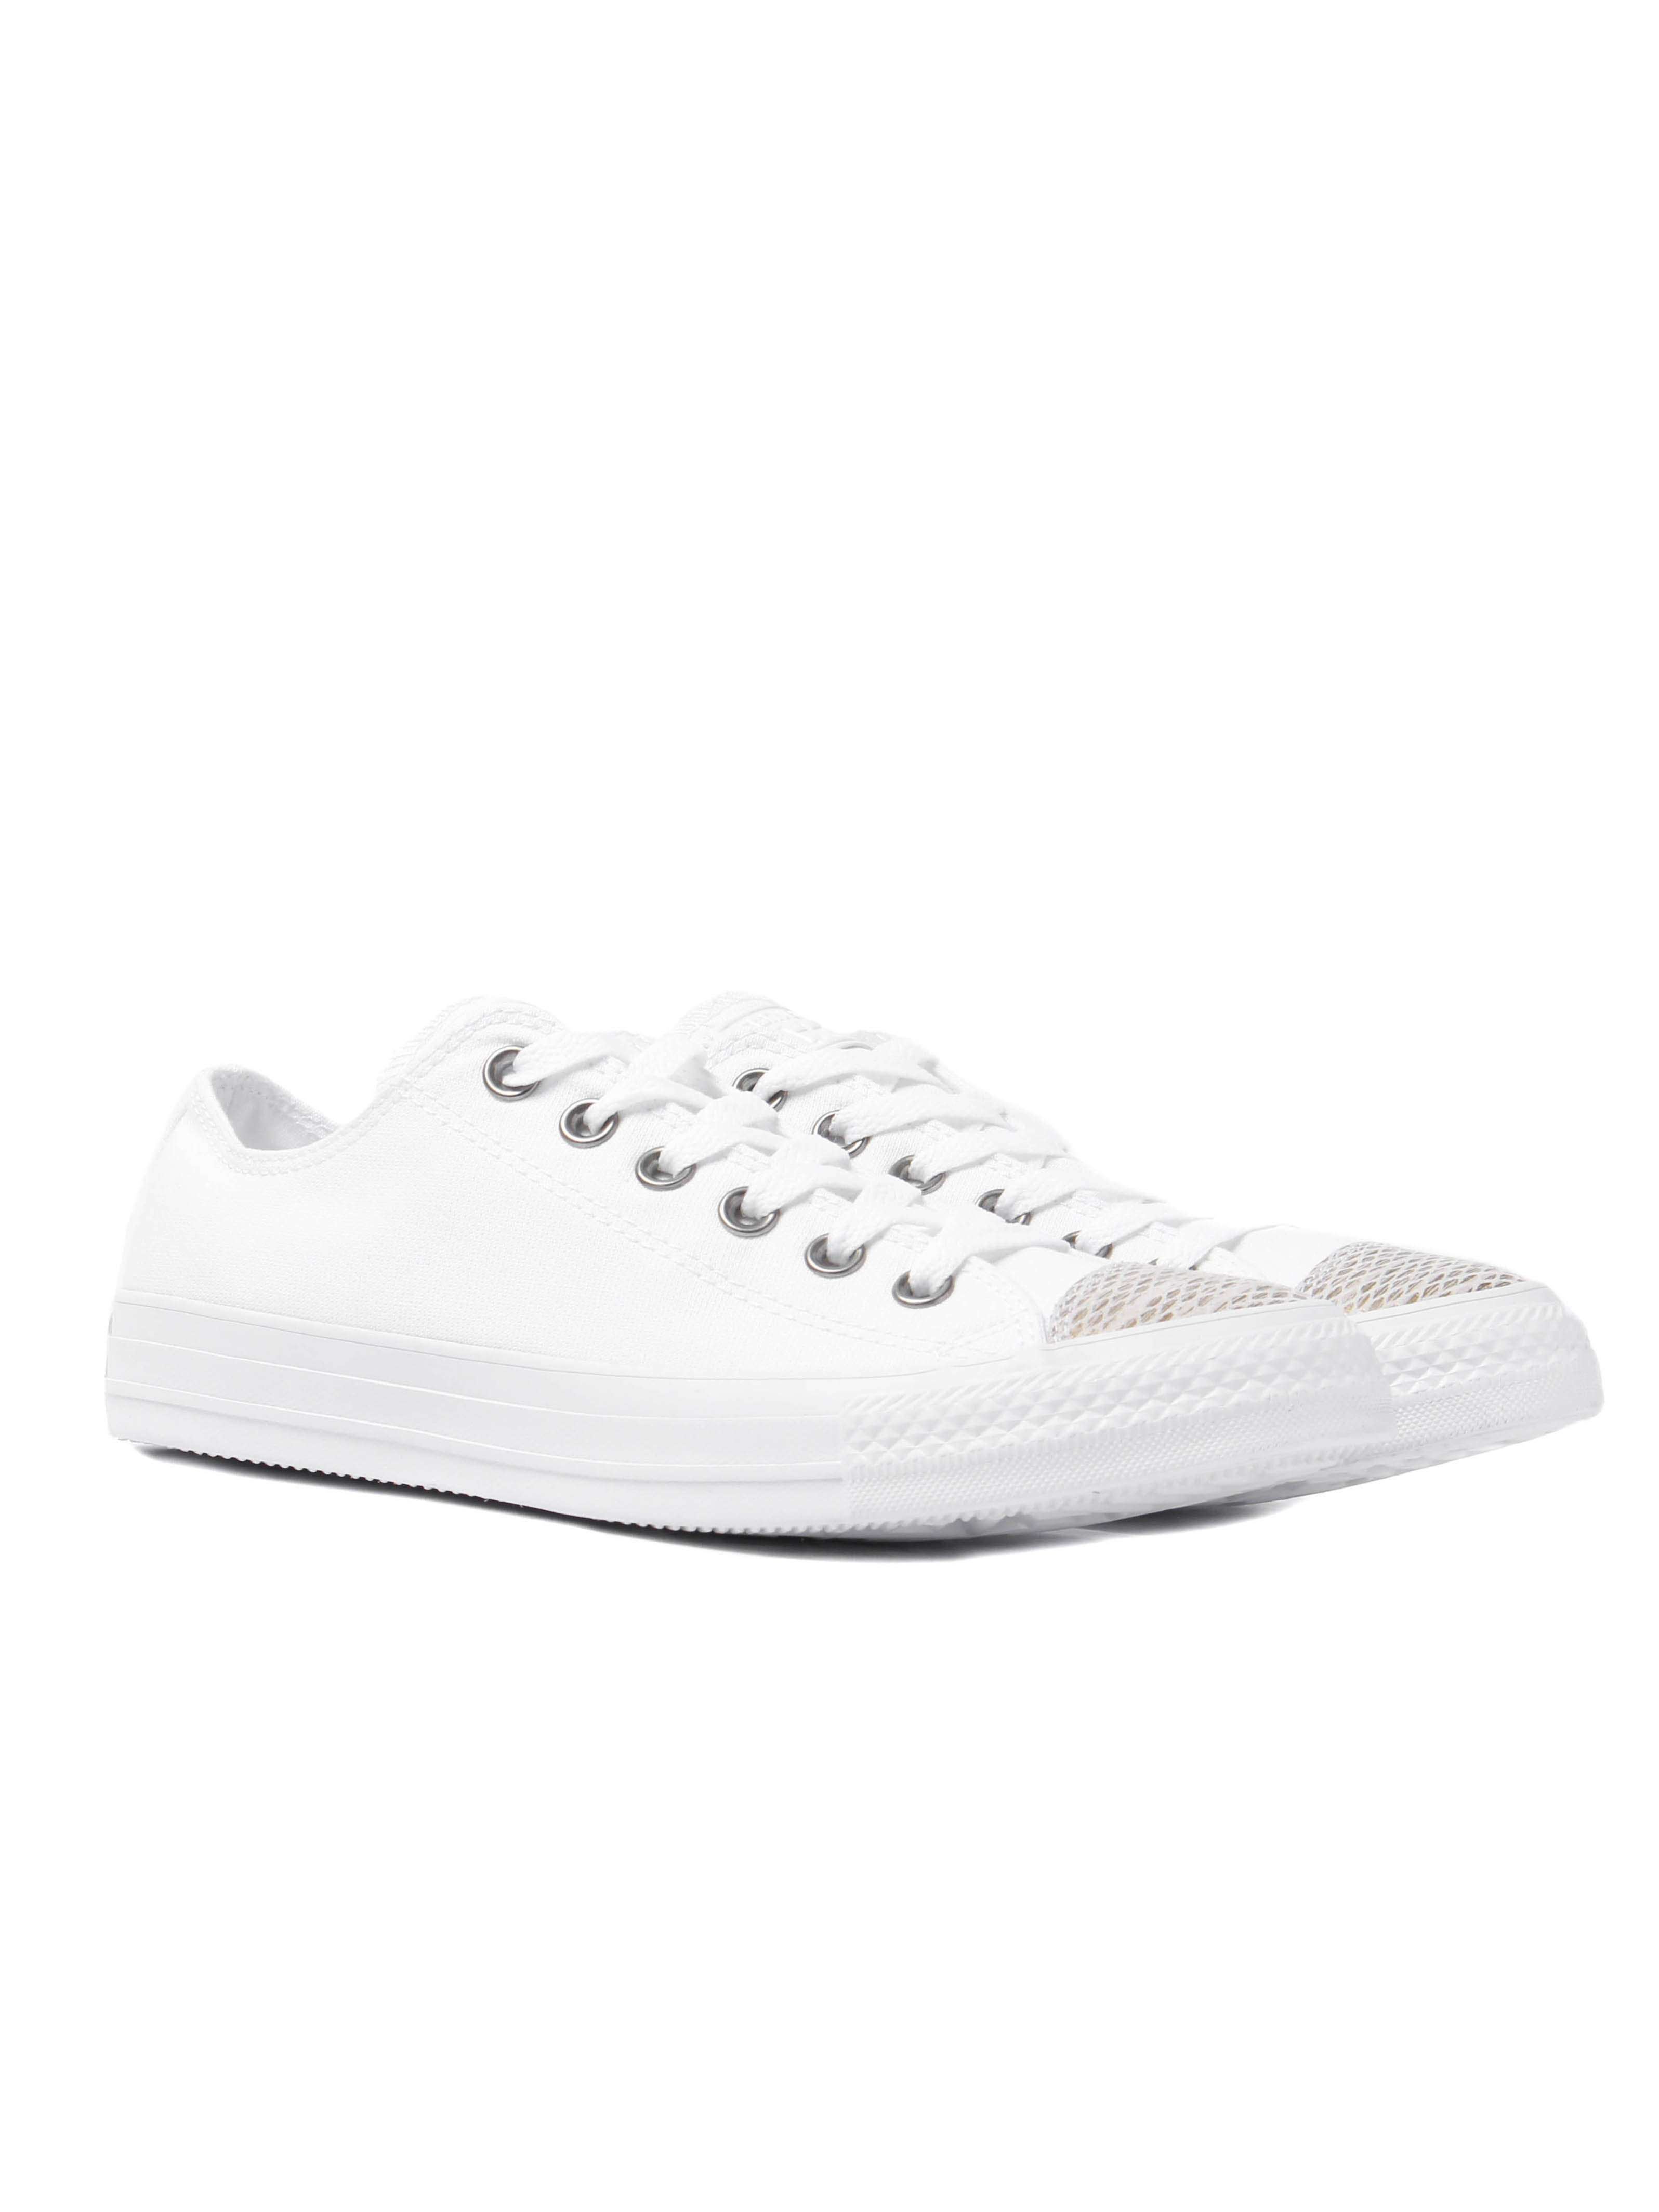 Converse Women's Chuck Taylor All Star OX Trainers – White Snake